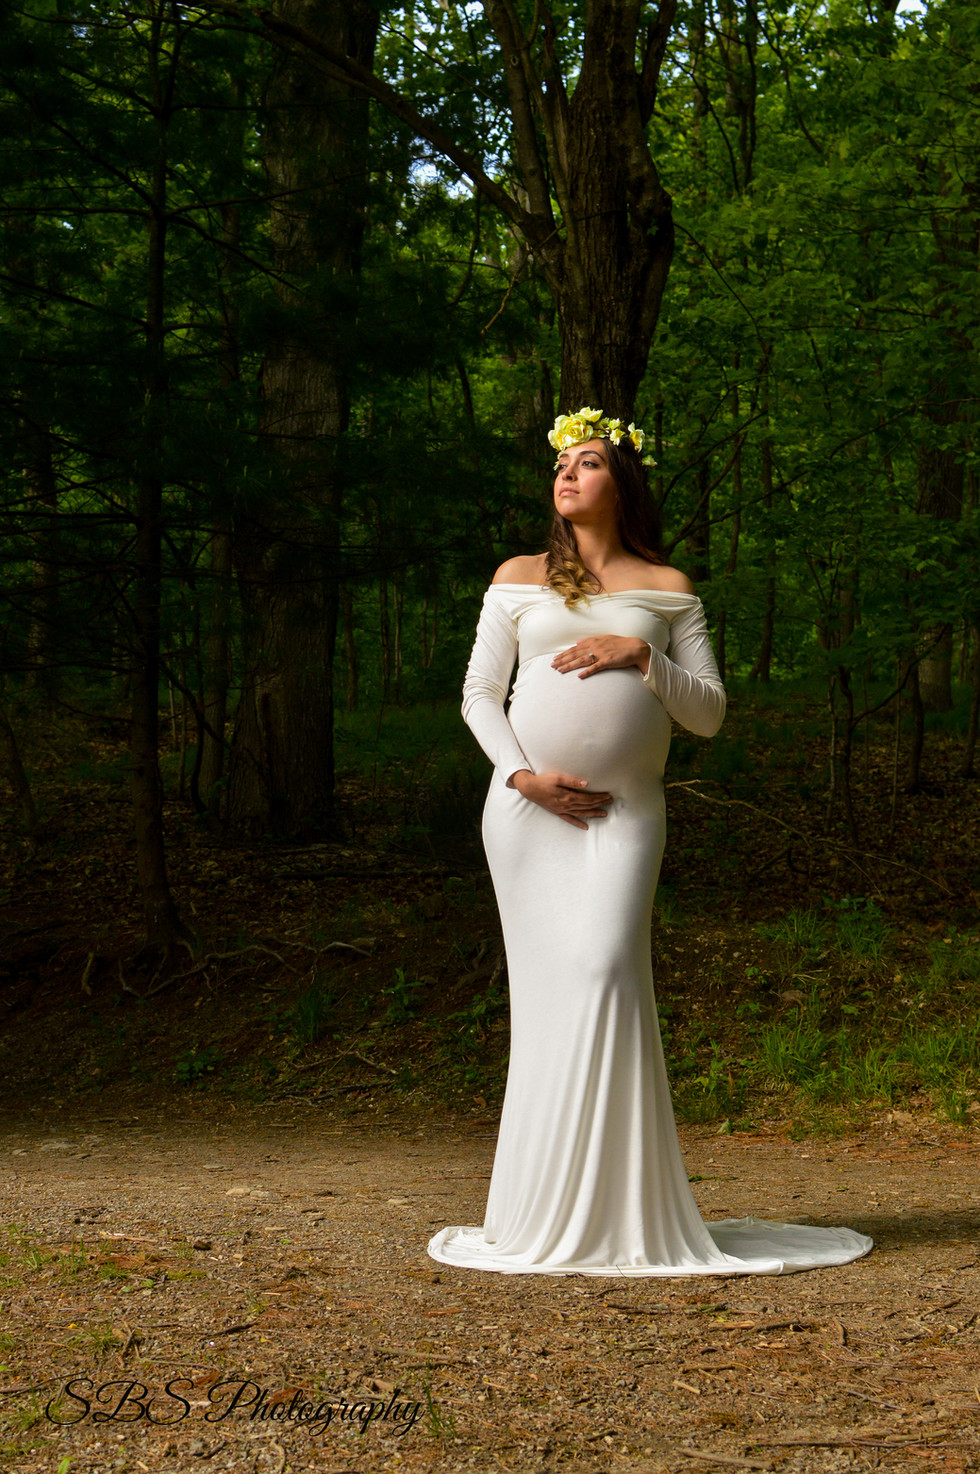 Maternity Photography CT: SBS Photography Connecticut-Wolfe Lake, Monroe, CT